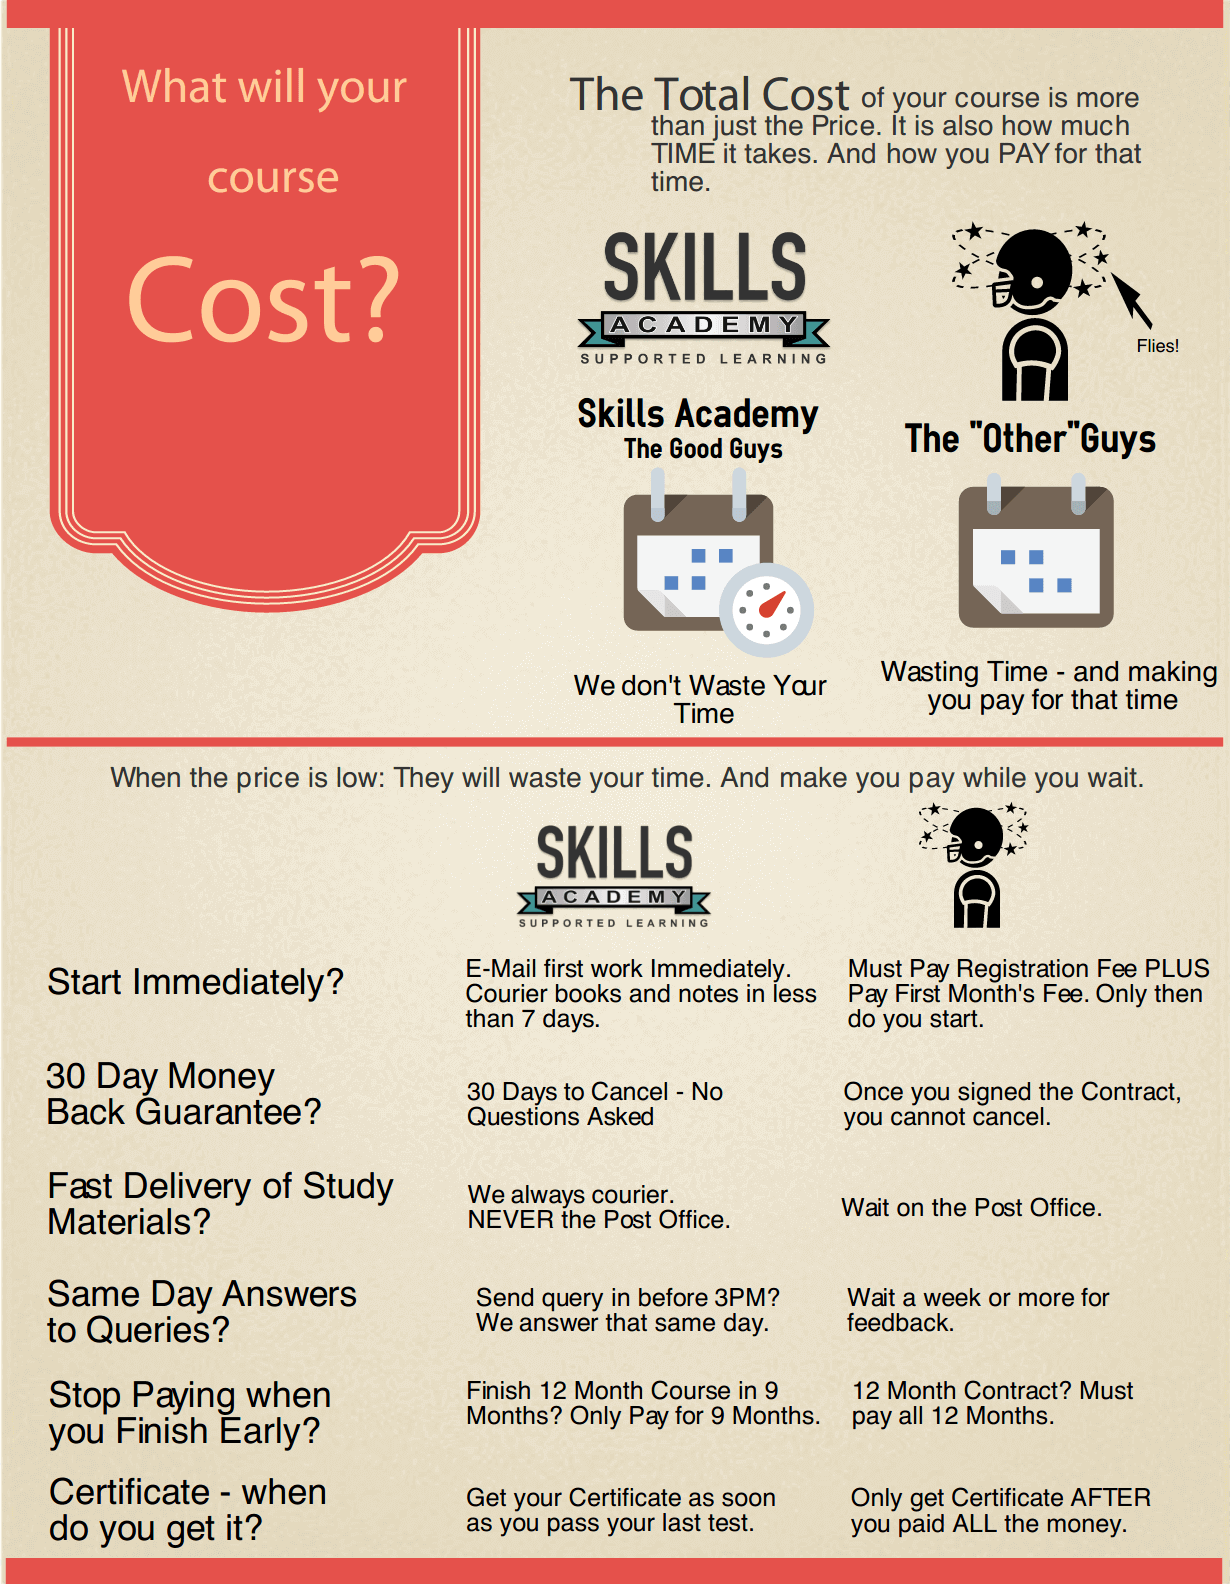 What will it cost